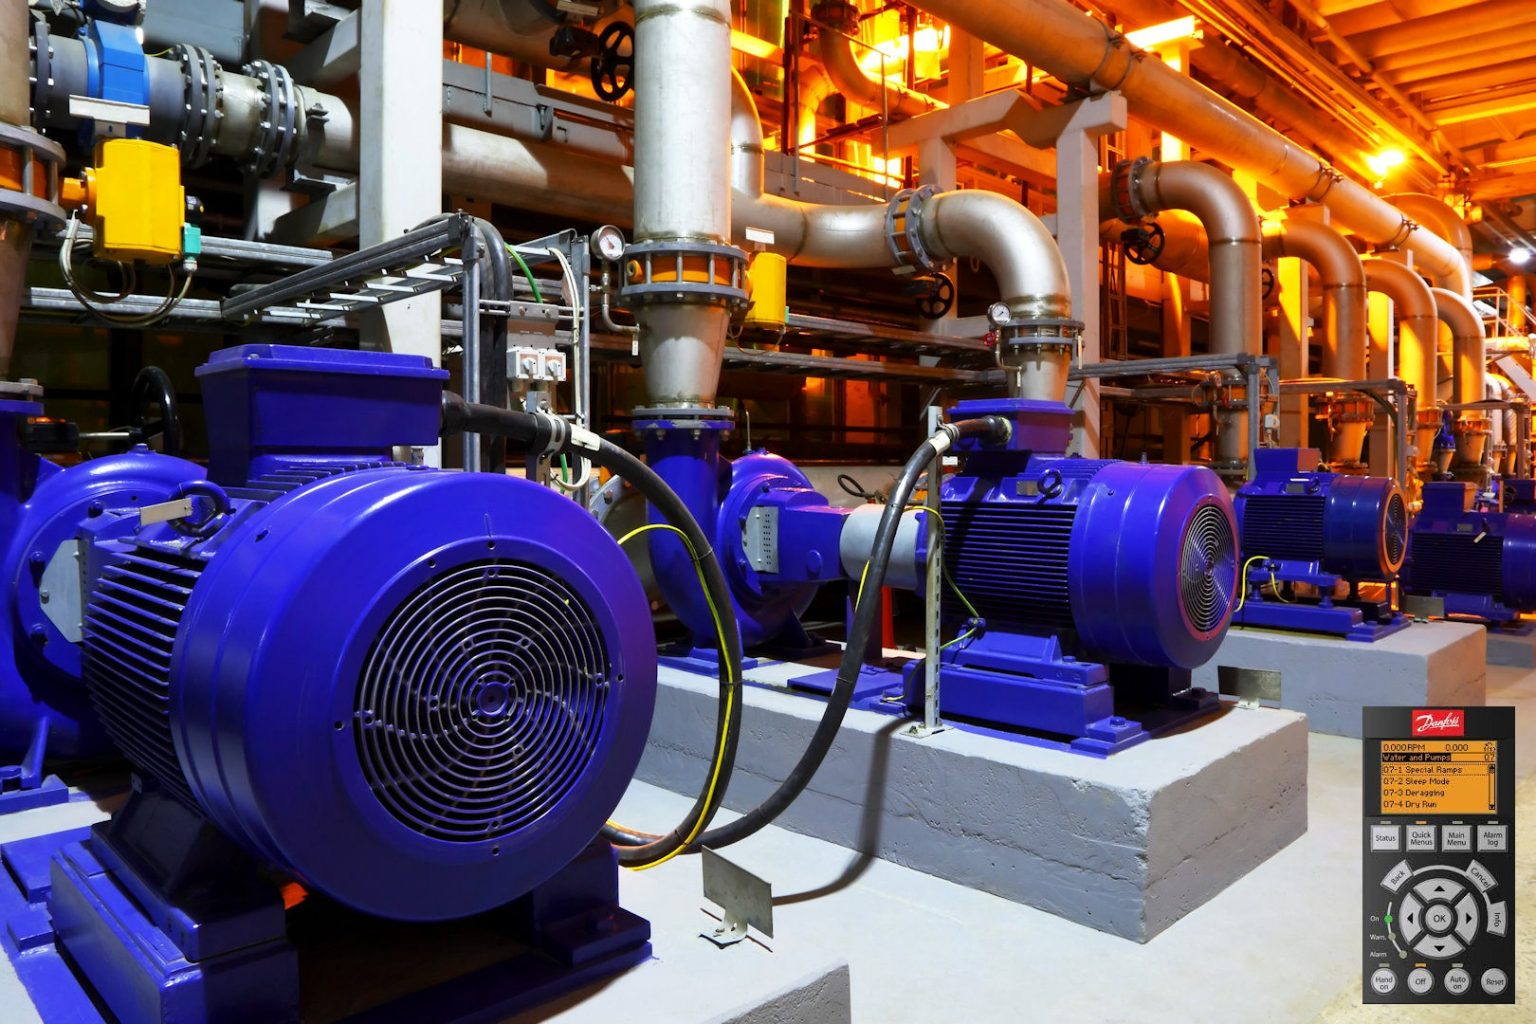 microngroup blue hvac pumps in plant room controlled by variable speed frequency drives